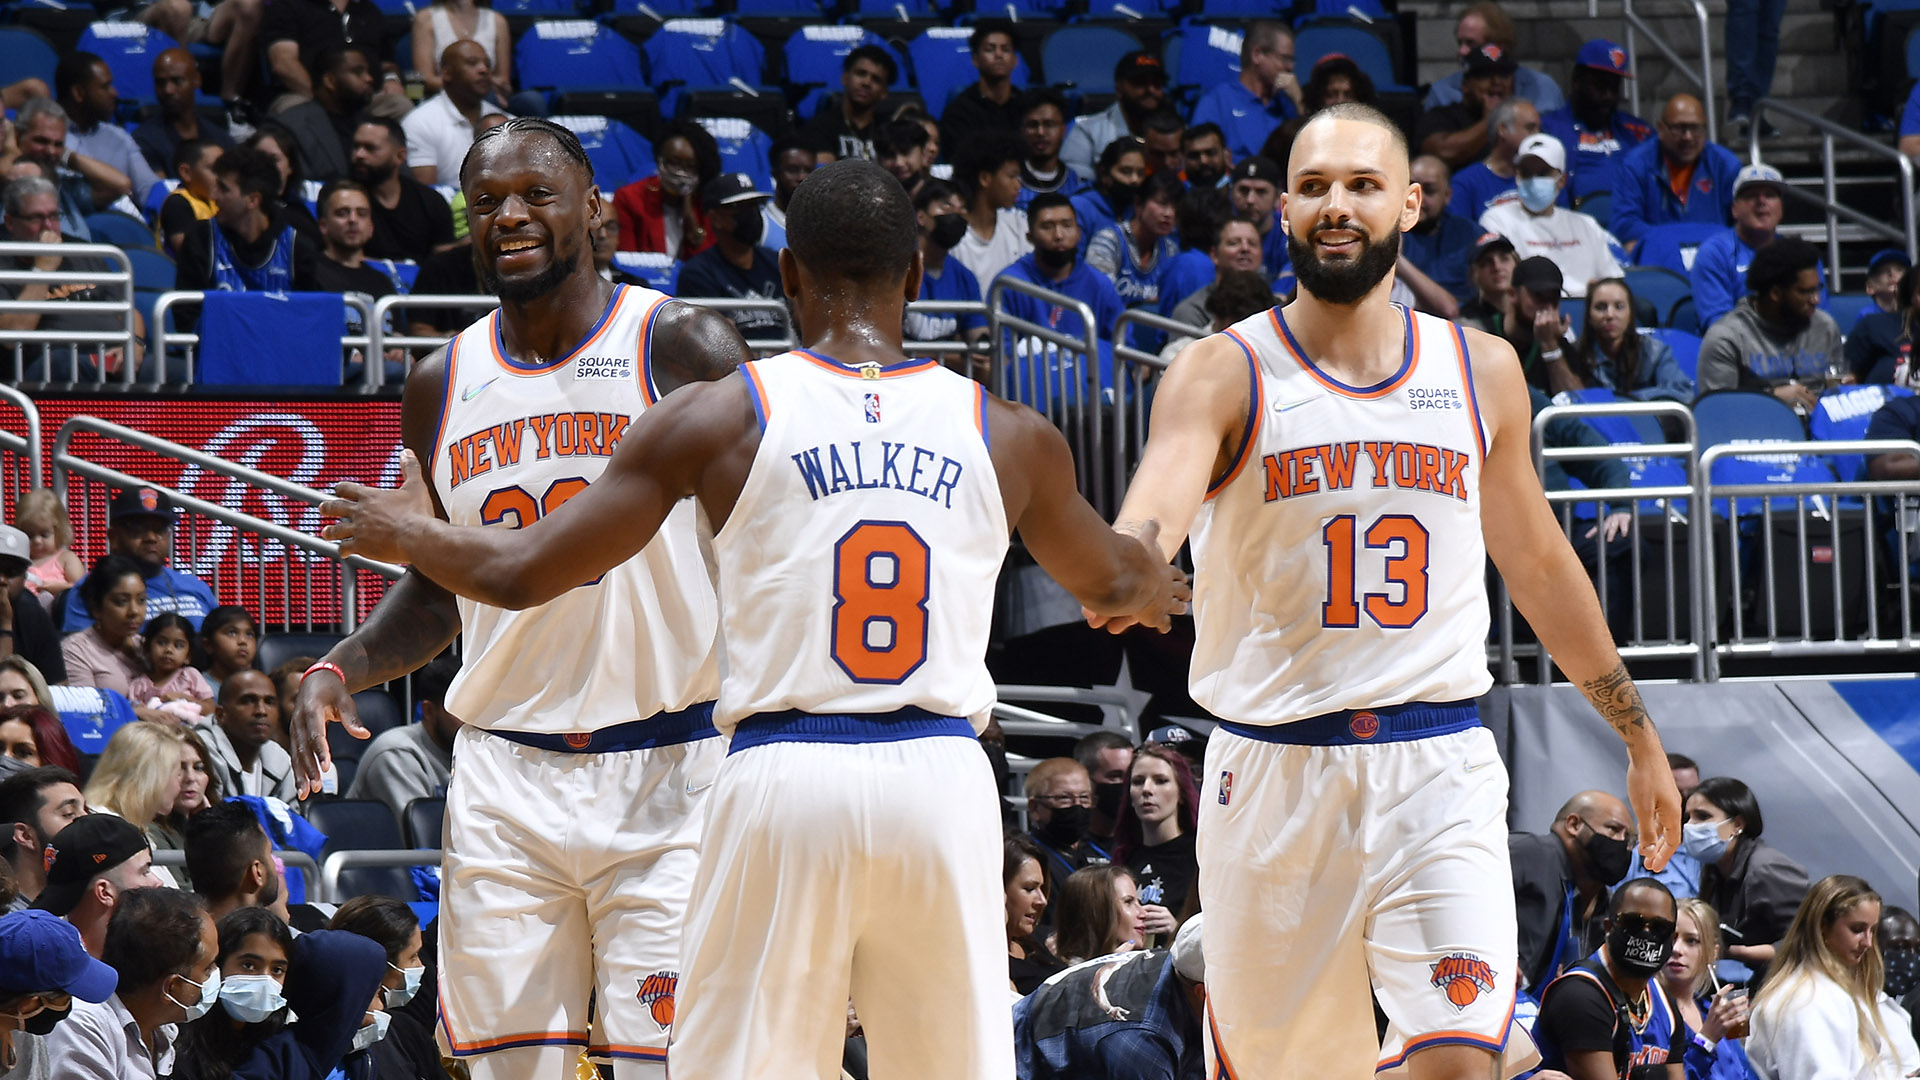 Are the Knicks poised to take next step in 2021-22?